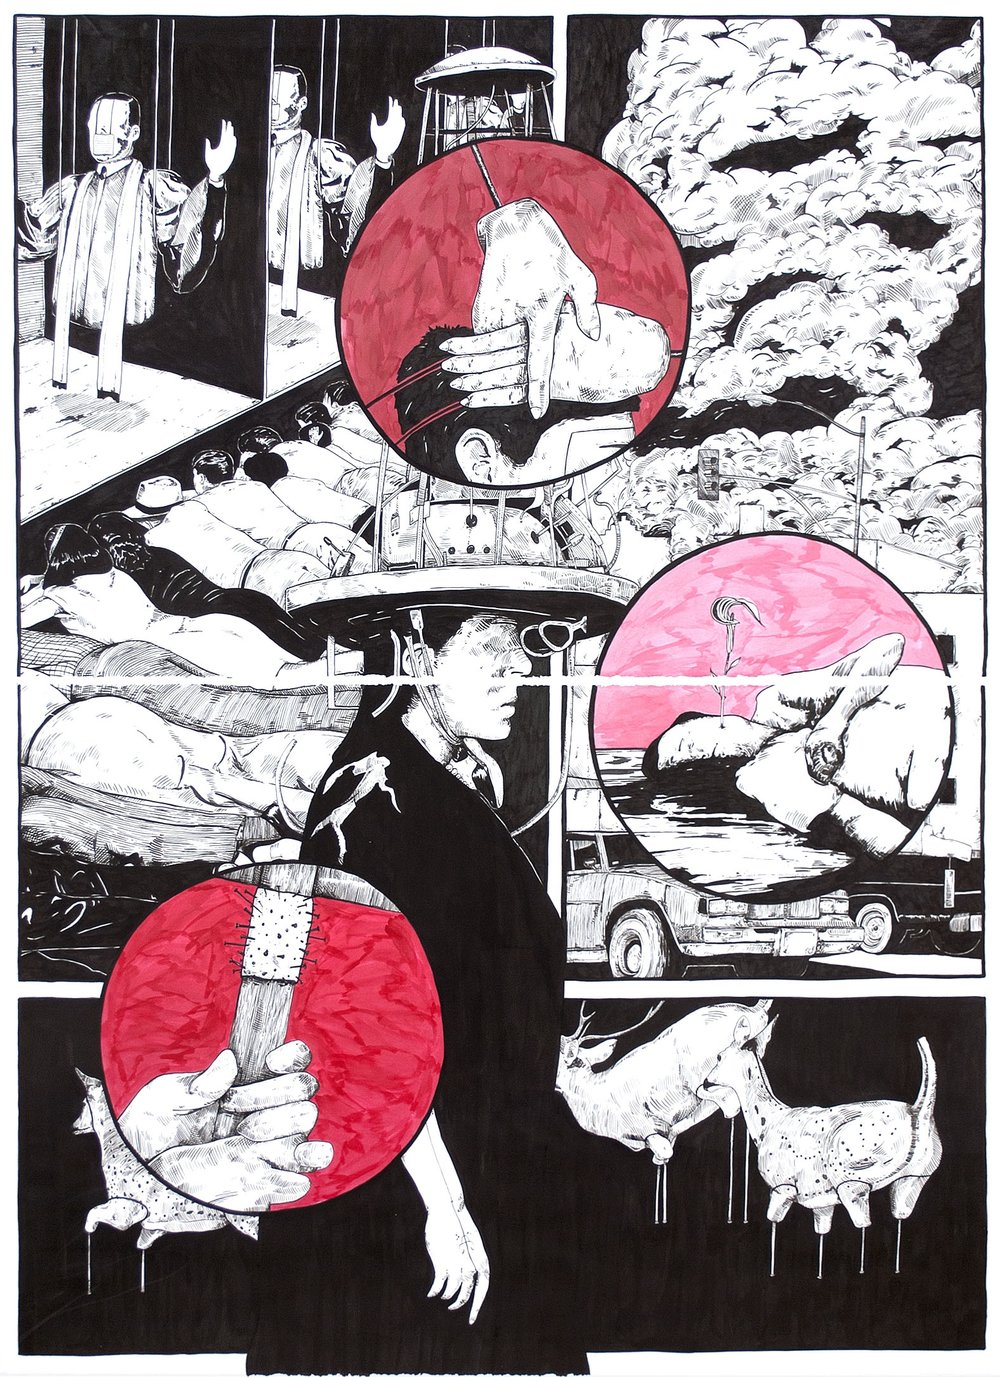 "Lower Than the Lowest Animal #7, 2014 60 x 44"" (diptych), india ink on paper"